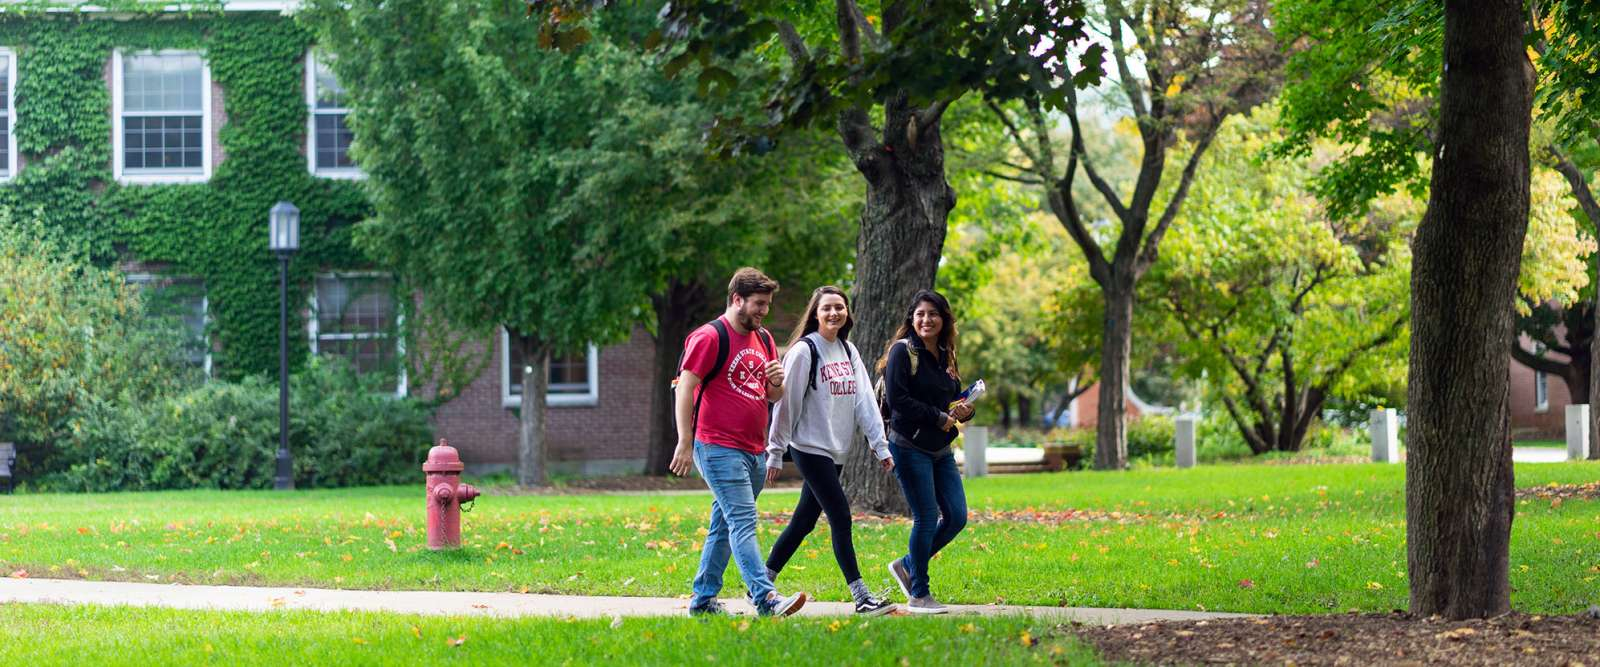 Walking Trails · Student Life · Keene State College on